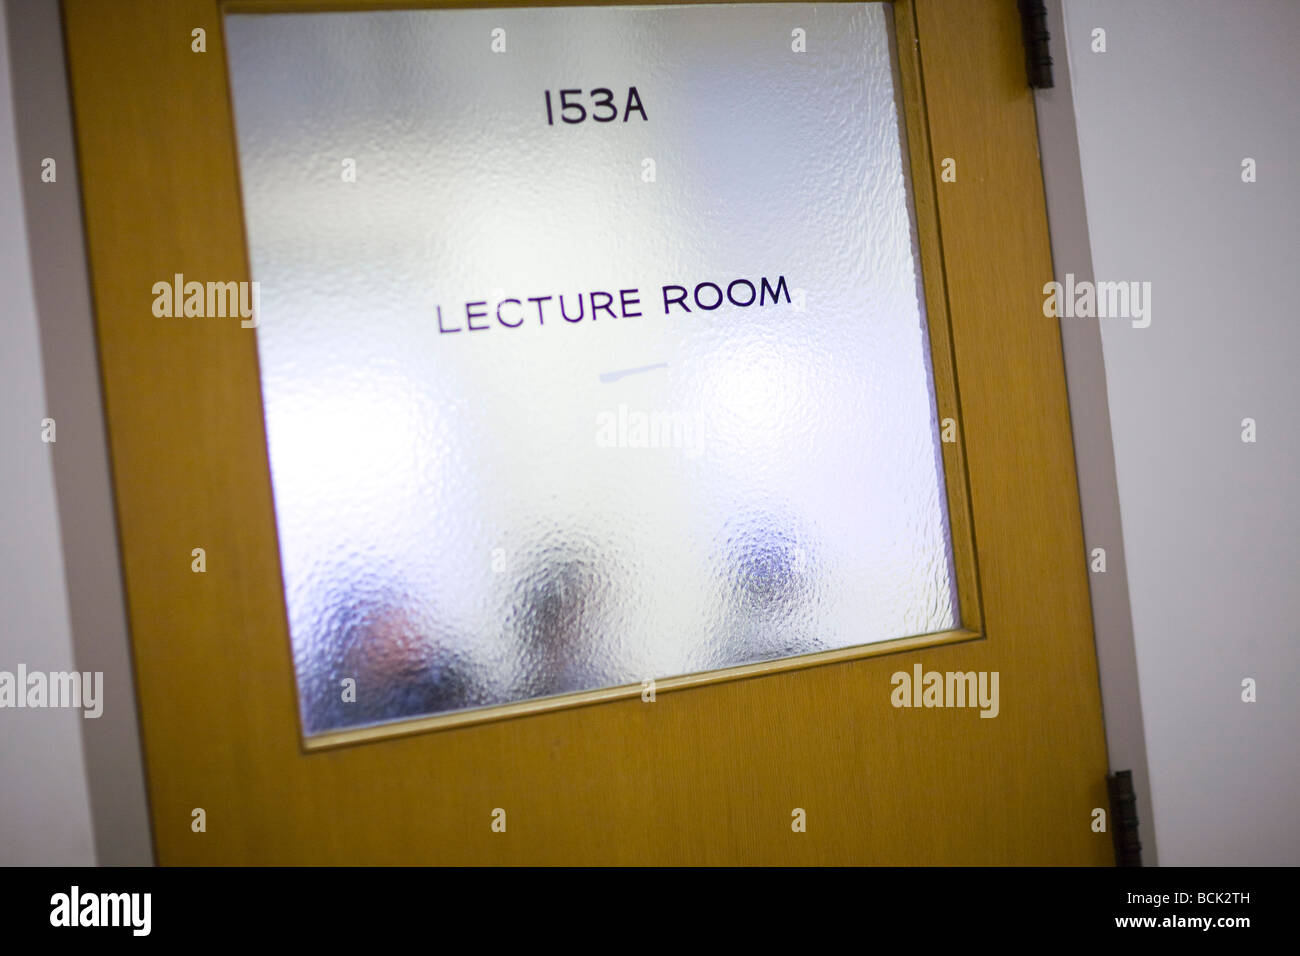 Door to a Lecture Room at a University - Stock Image